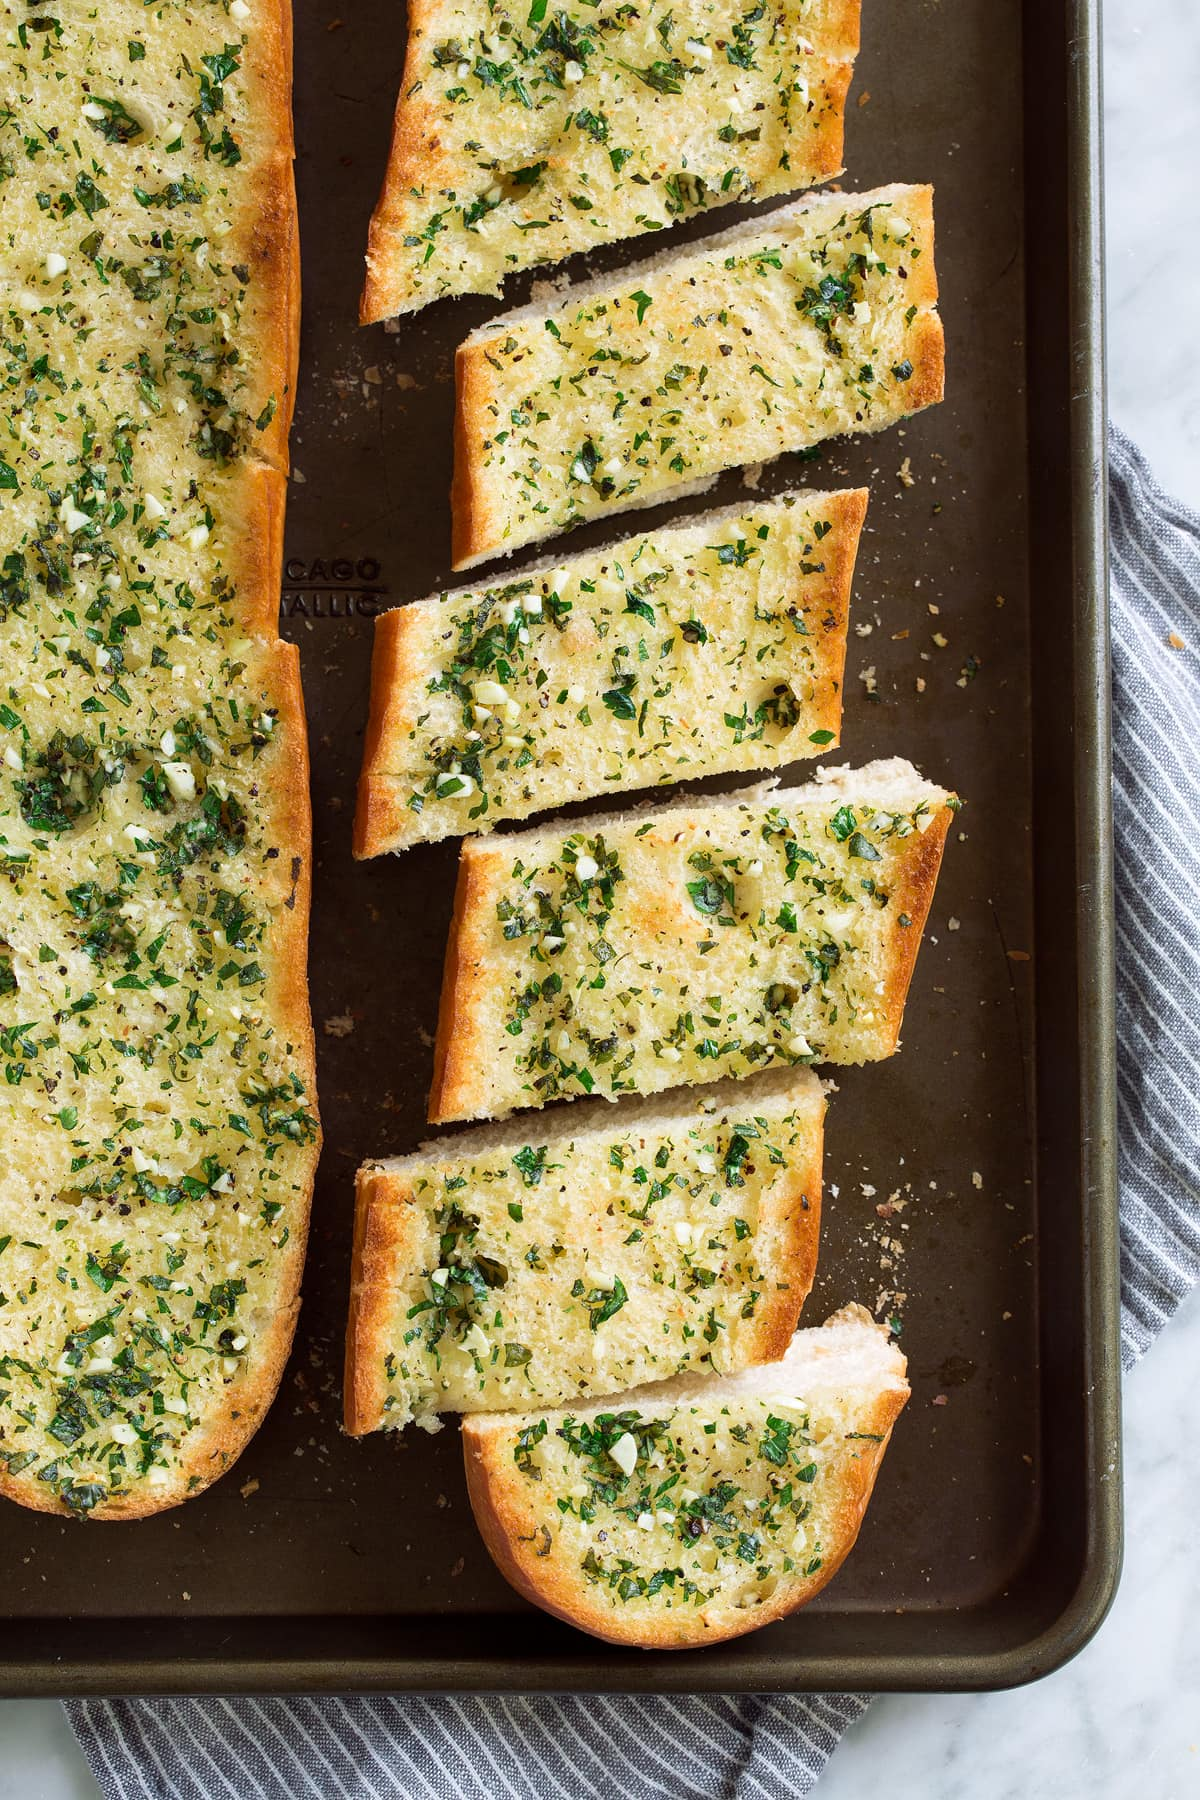 Loaf of garlic bread cut into slices on a baking sheet.